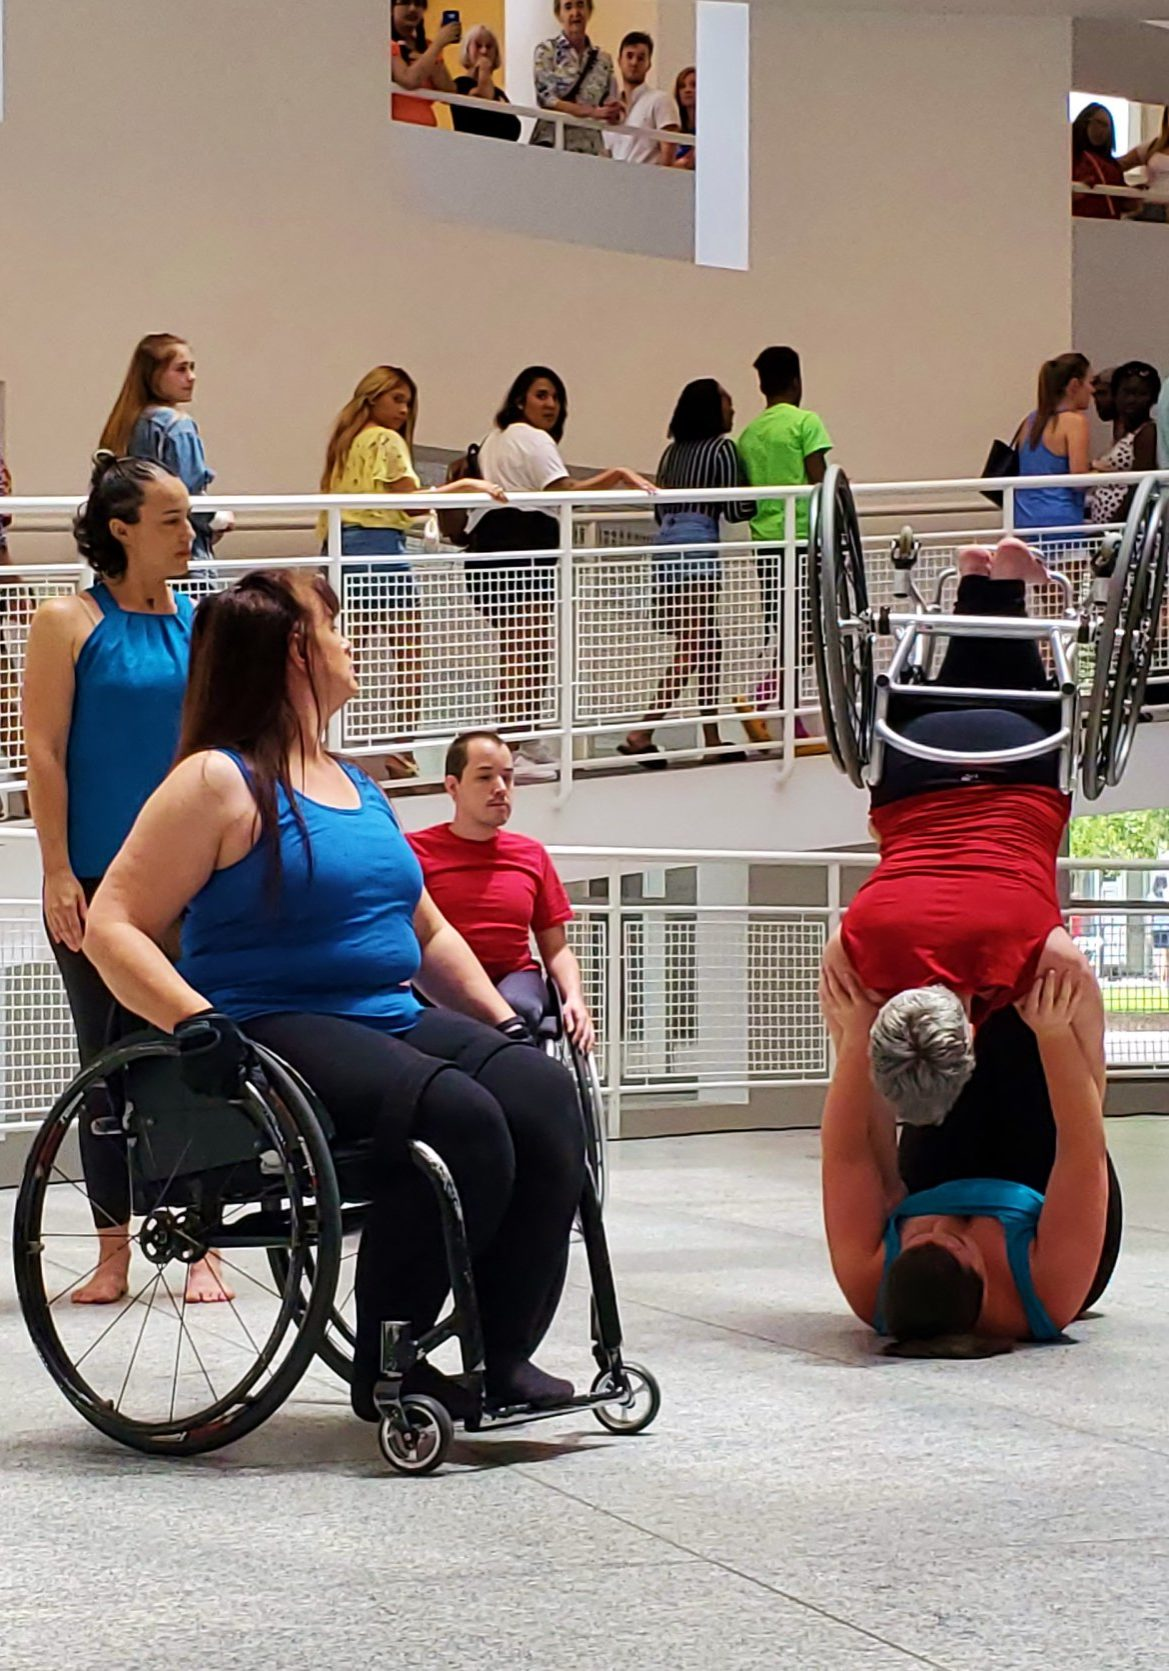 One person on wheelchair watching two other people dancing with wheelchairs